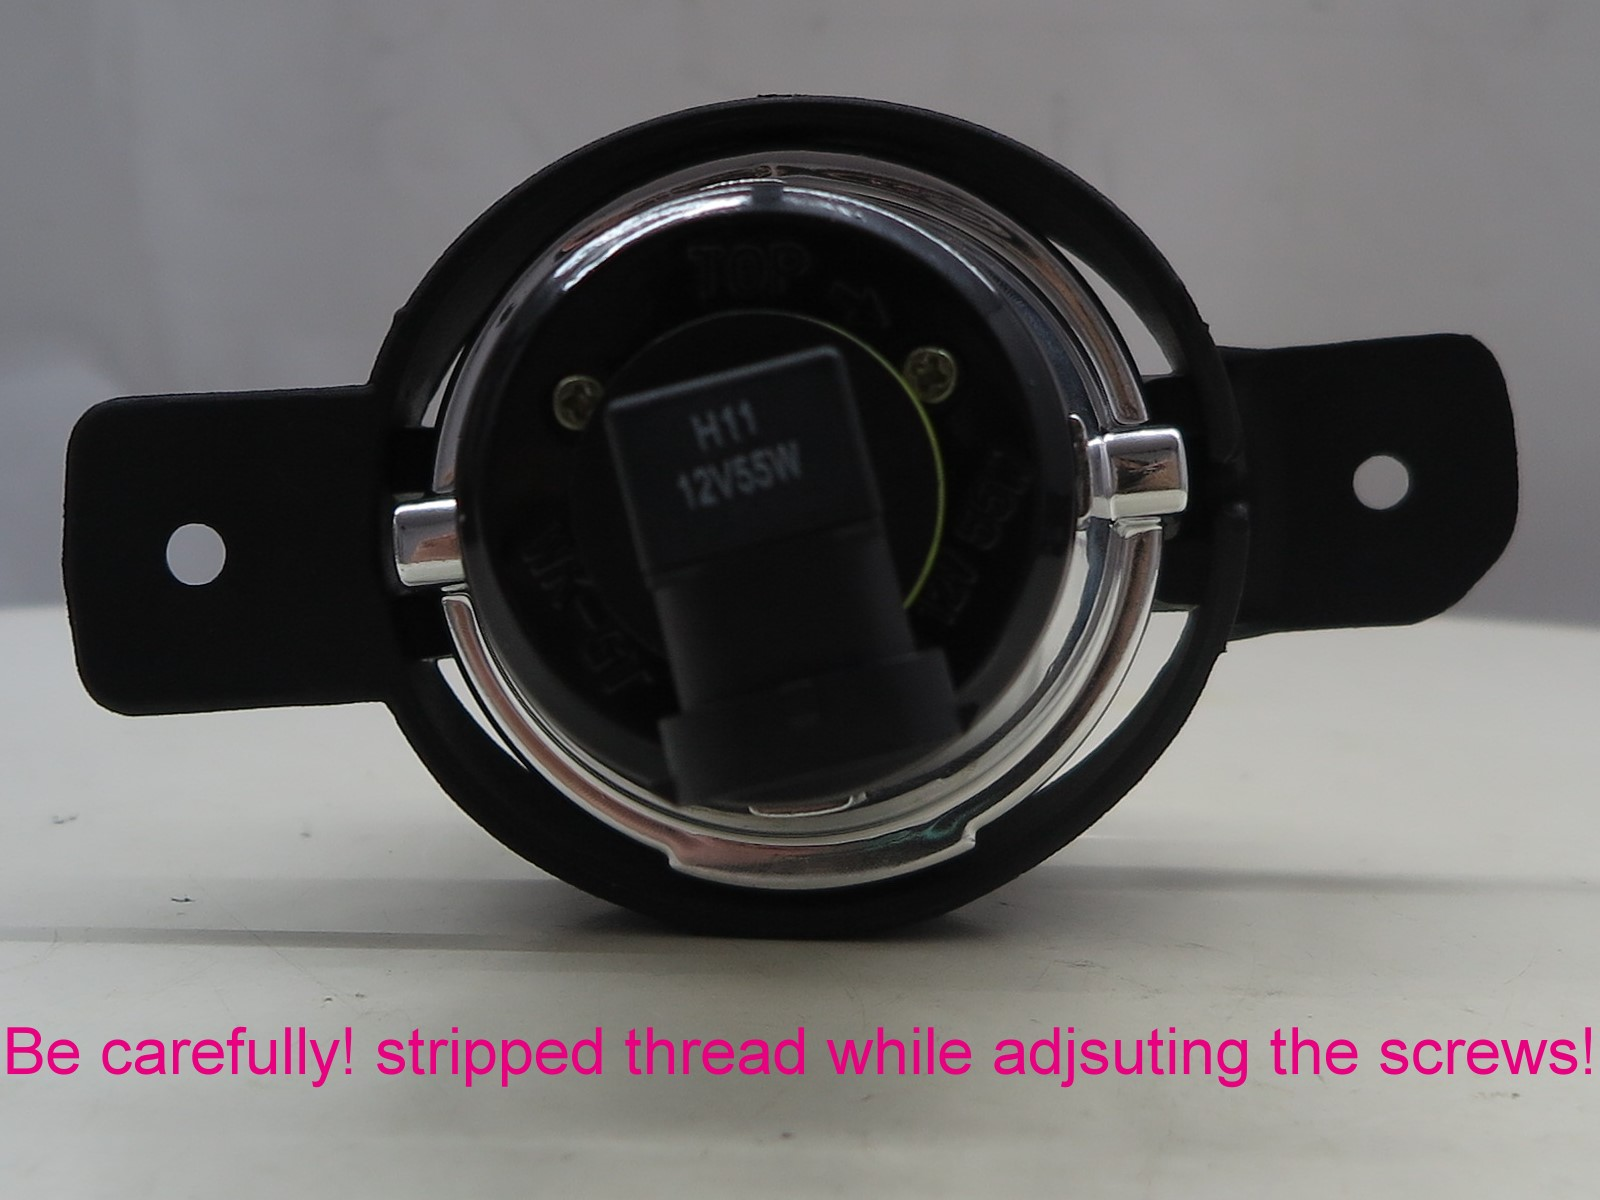 thumbnail 3 - Sunny G10/N16 MK7 2003-2005 Facelift 4D Projector Fog Light Black for NISSAN